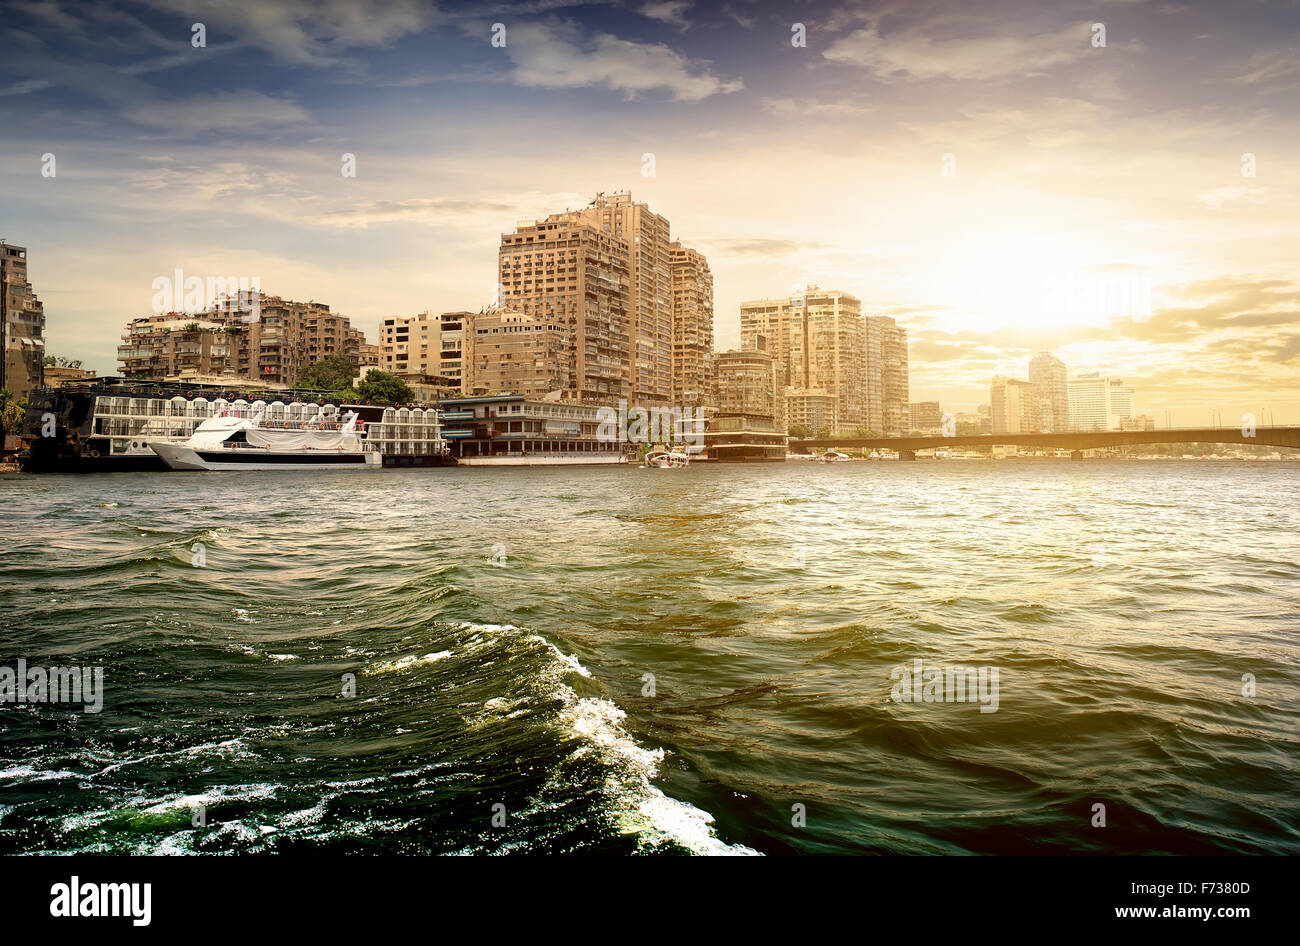 Modern buildings of Cairo on the Nile - Stock Image